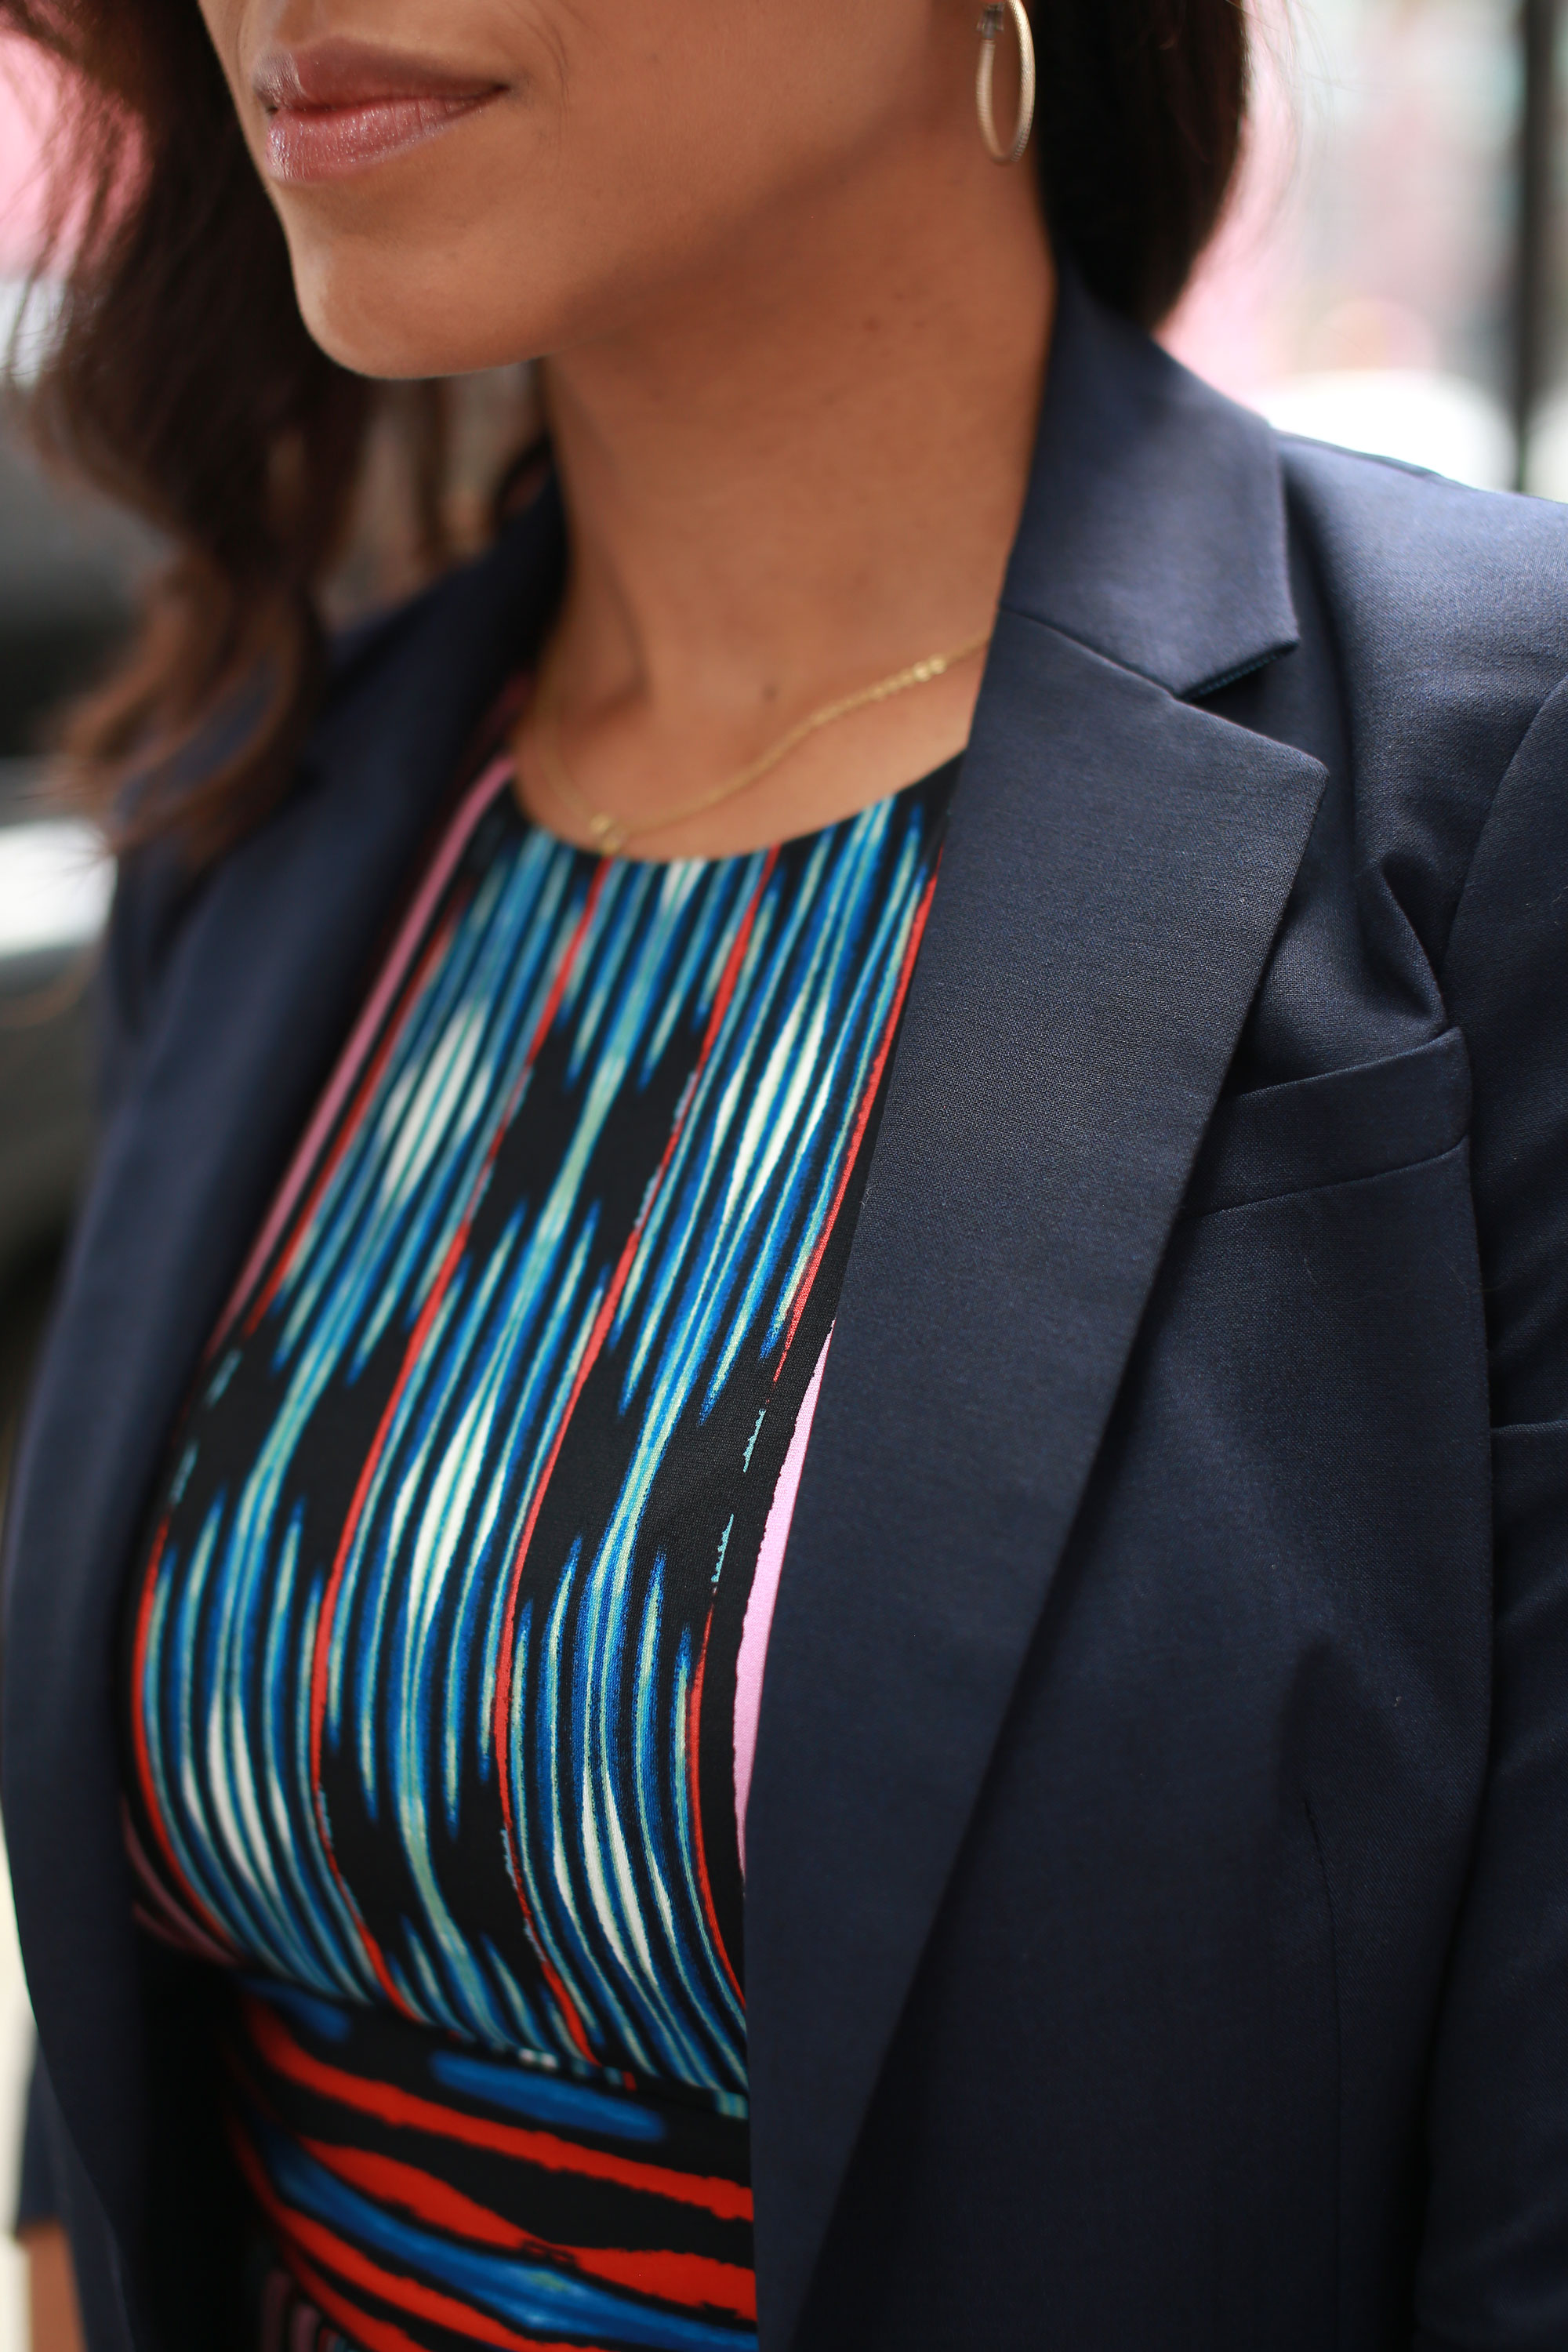 THE BLAZER - Tie your office look together with the a perfectly polished blazer. Not only will this layer keep you warm in an air-conditioned office, but it adds a super sleek finishing touch to your work outfit.